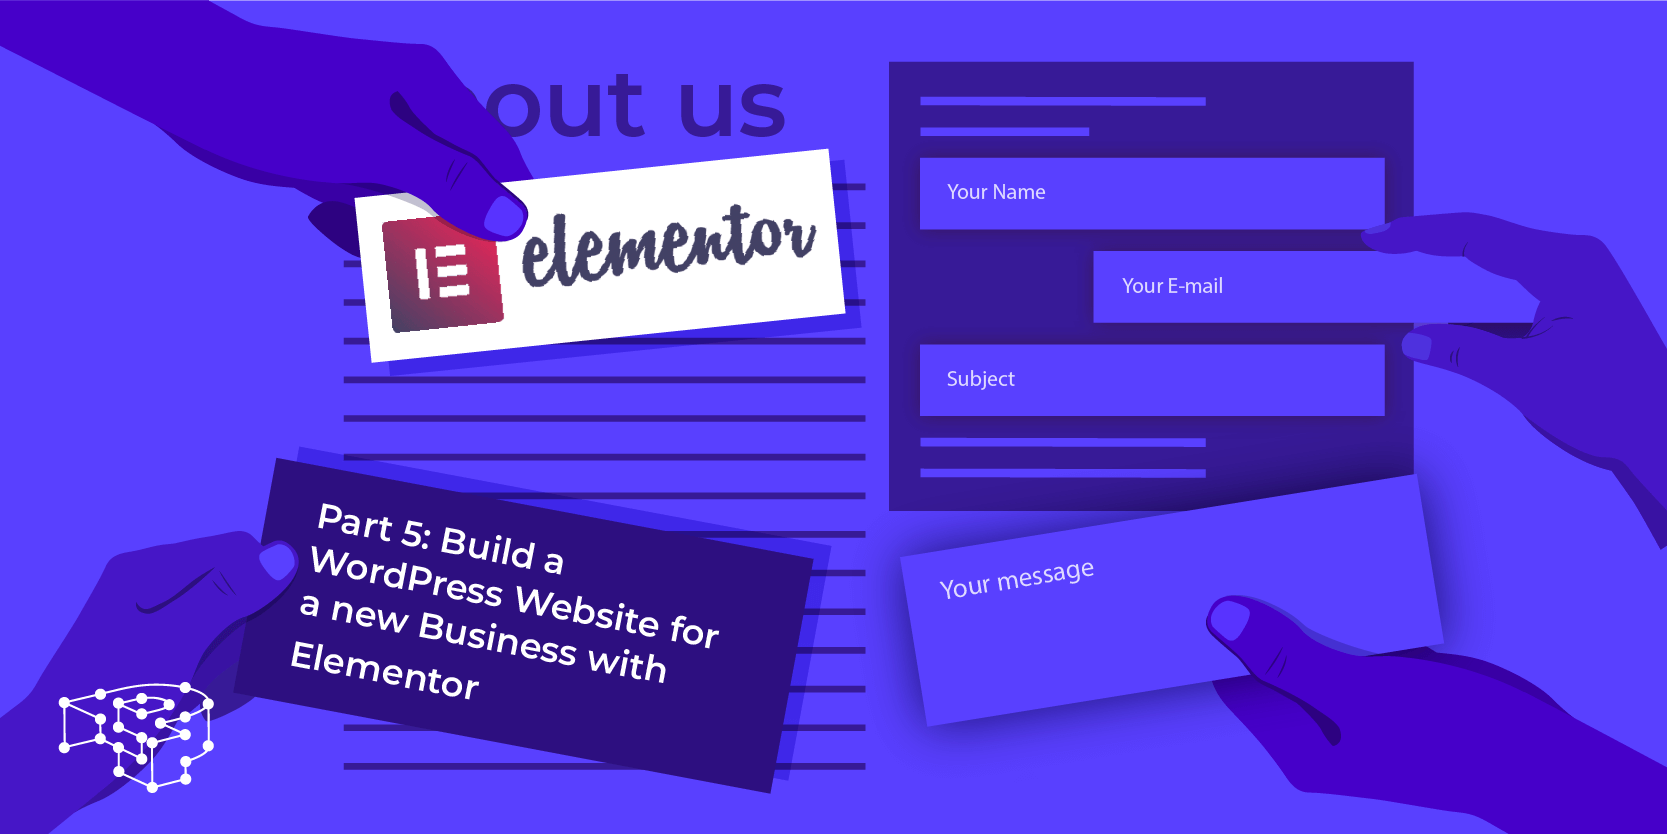 Image for Part 6: Build a WordPress Website for a new Business with Elementor